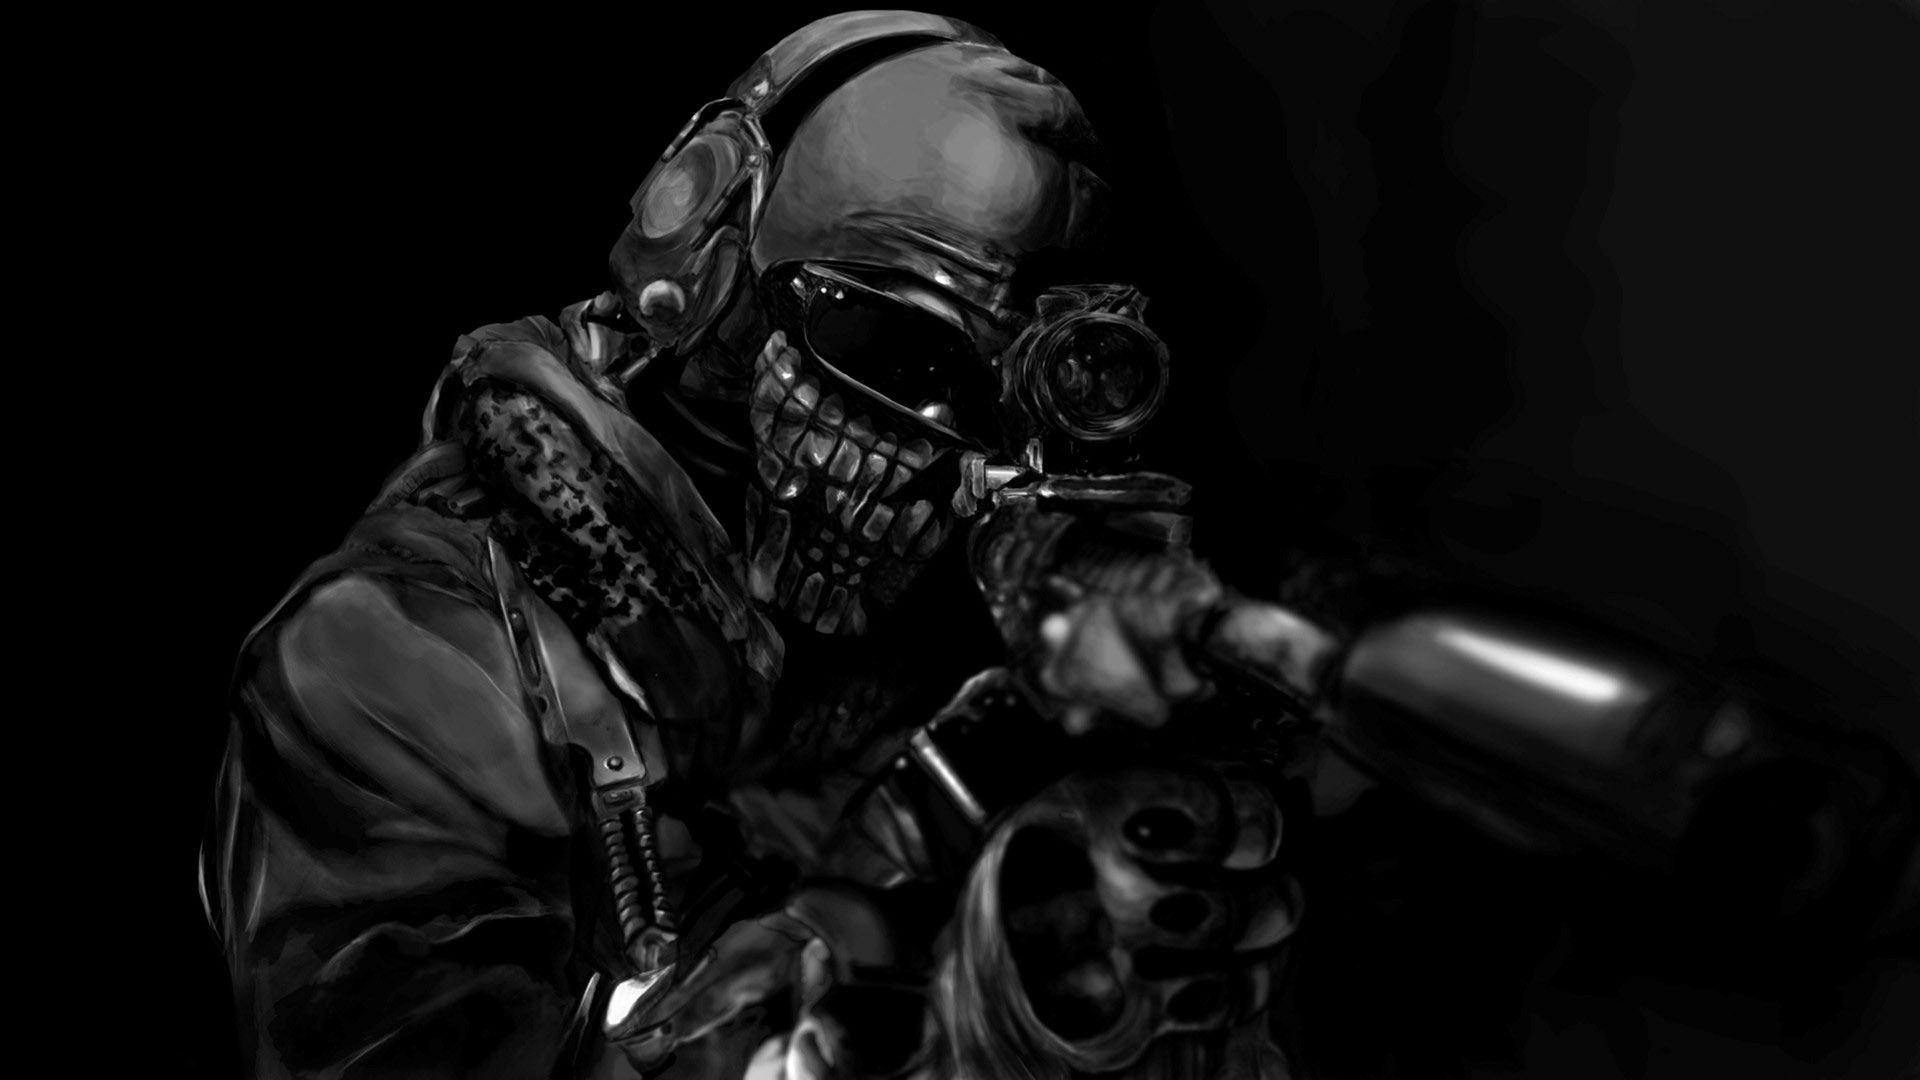 Call Of Duty Ghosts Wallpaper (40 Wallpapers) – Adorable Wallpapers